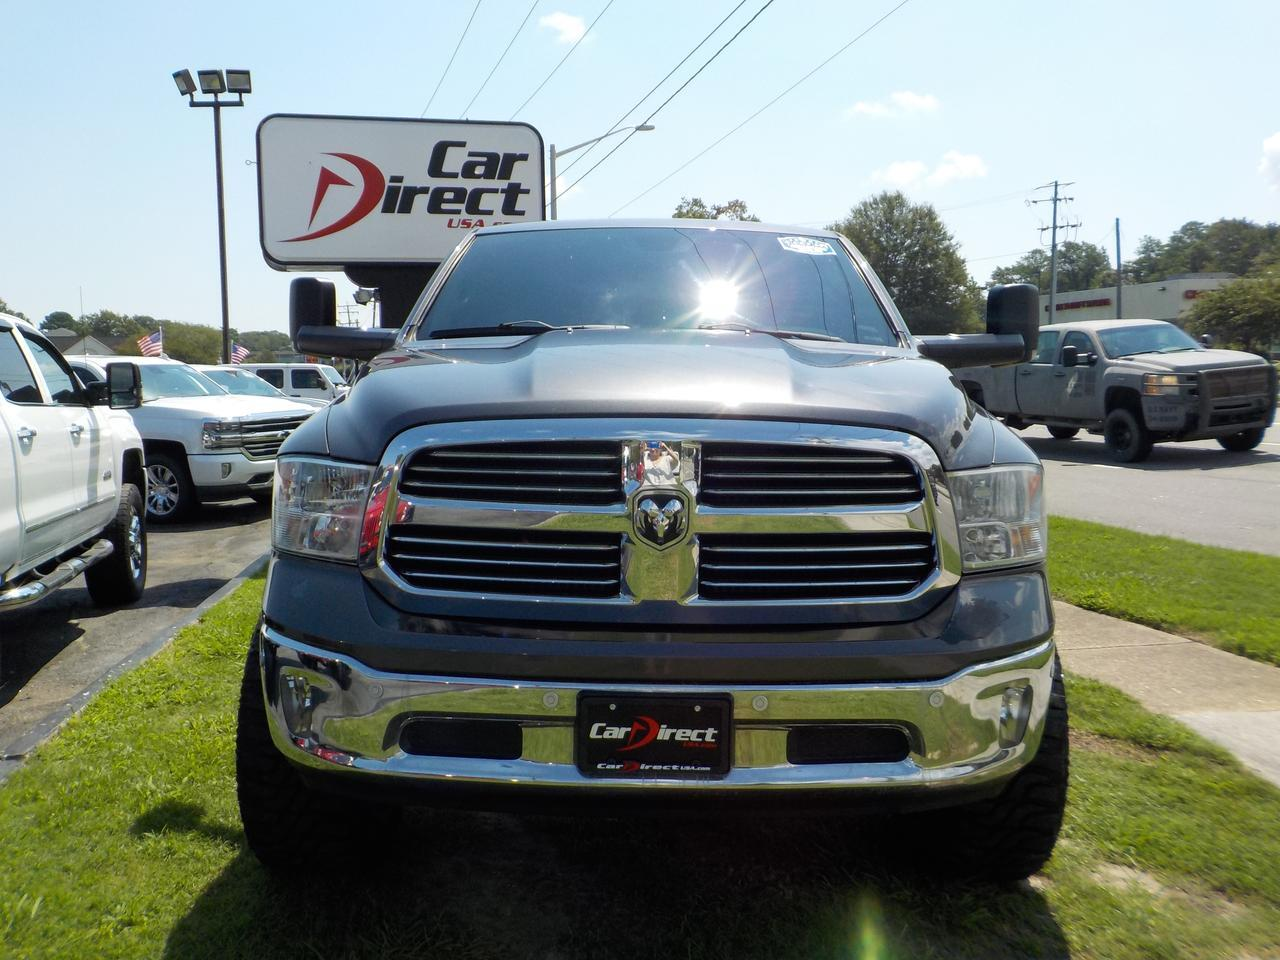 2014 RAM 1500 SLT QUAD CAB 4X4, BACKUP CAM, PARKING SENSORS, BLUETOOTH, UCONNECT, HEATED FRONT SEATS,REMOTE START! Virginia Beach VA